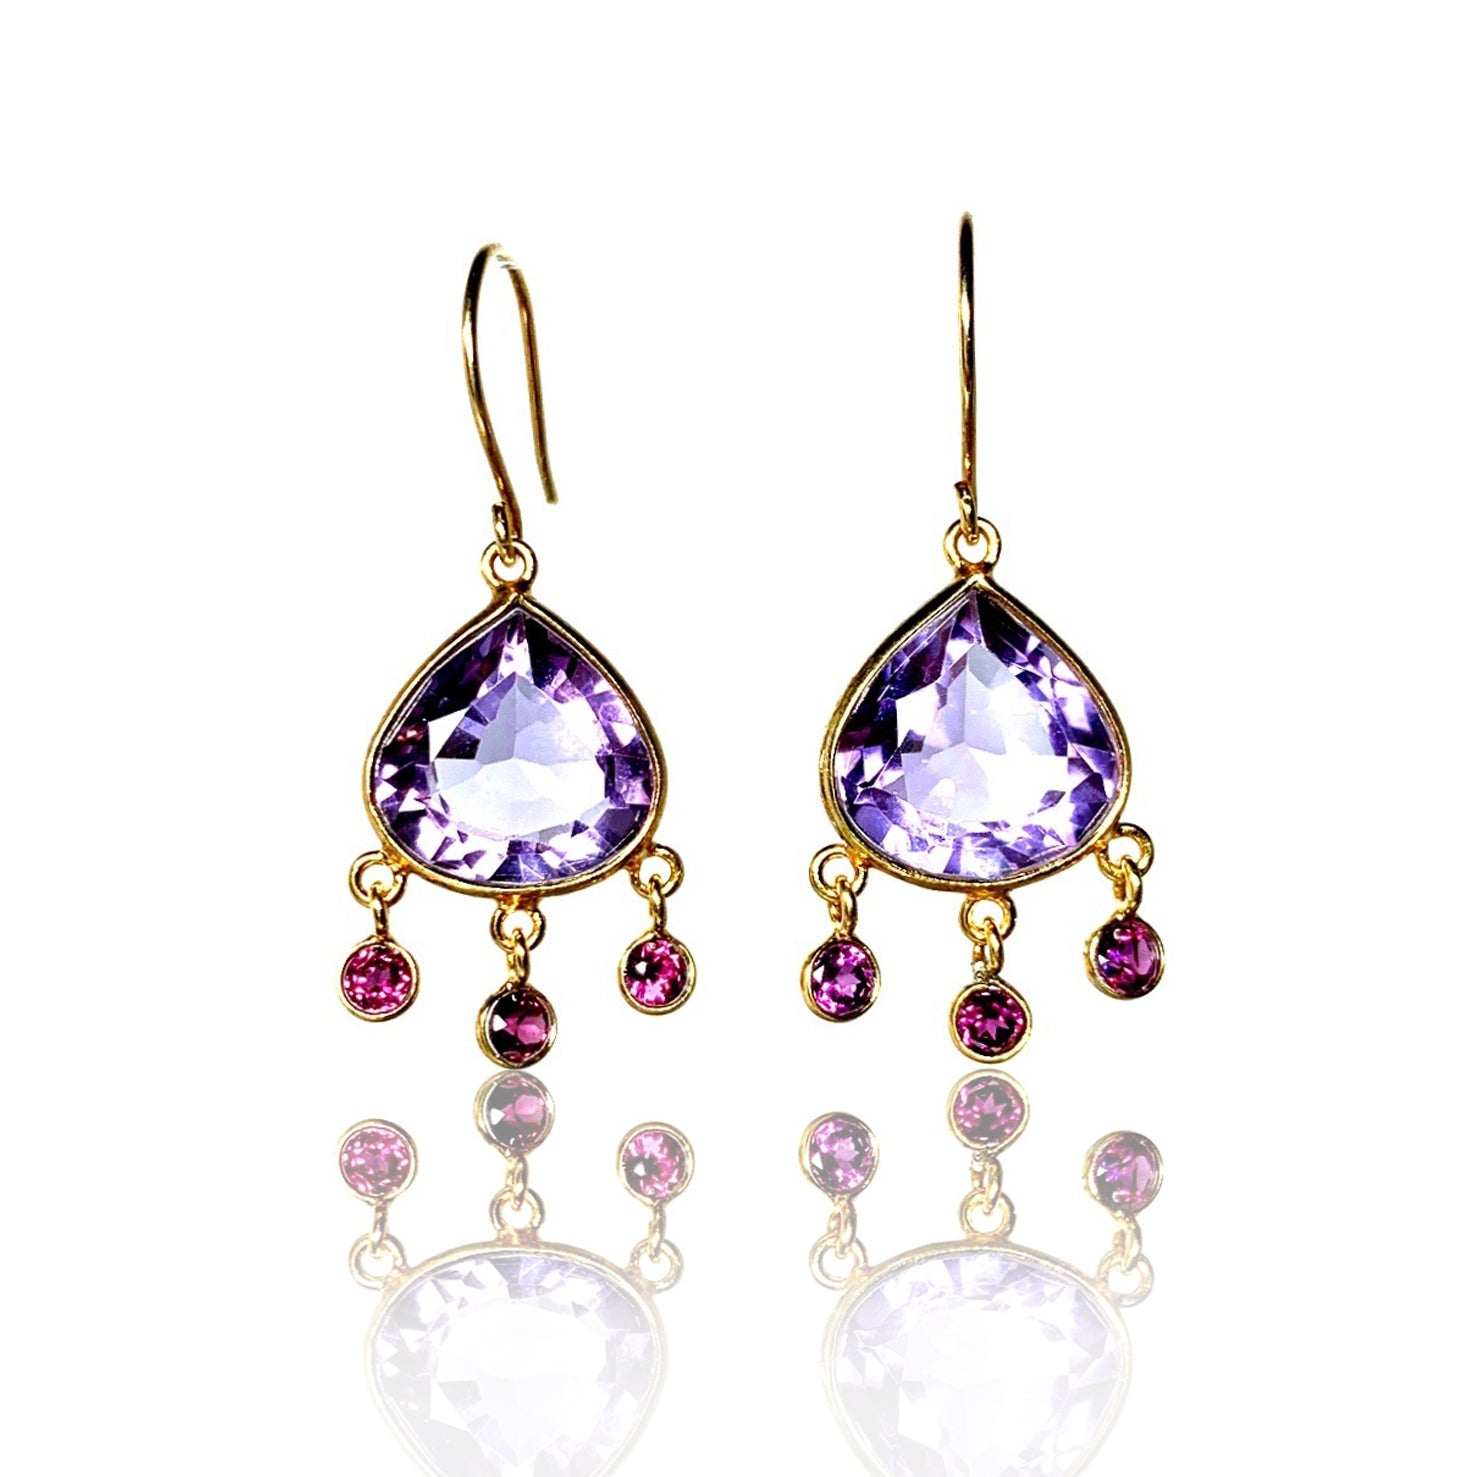 Amethyst with Rhodolite Garnet dangles